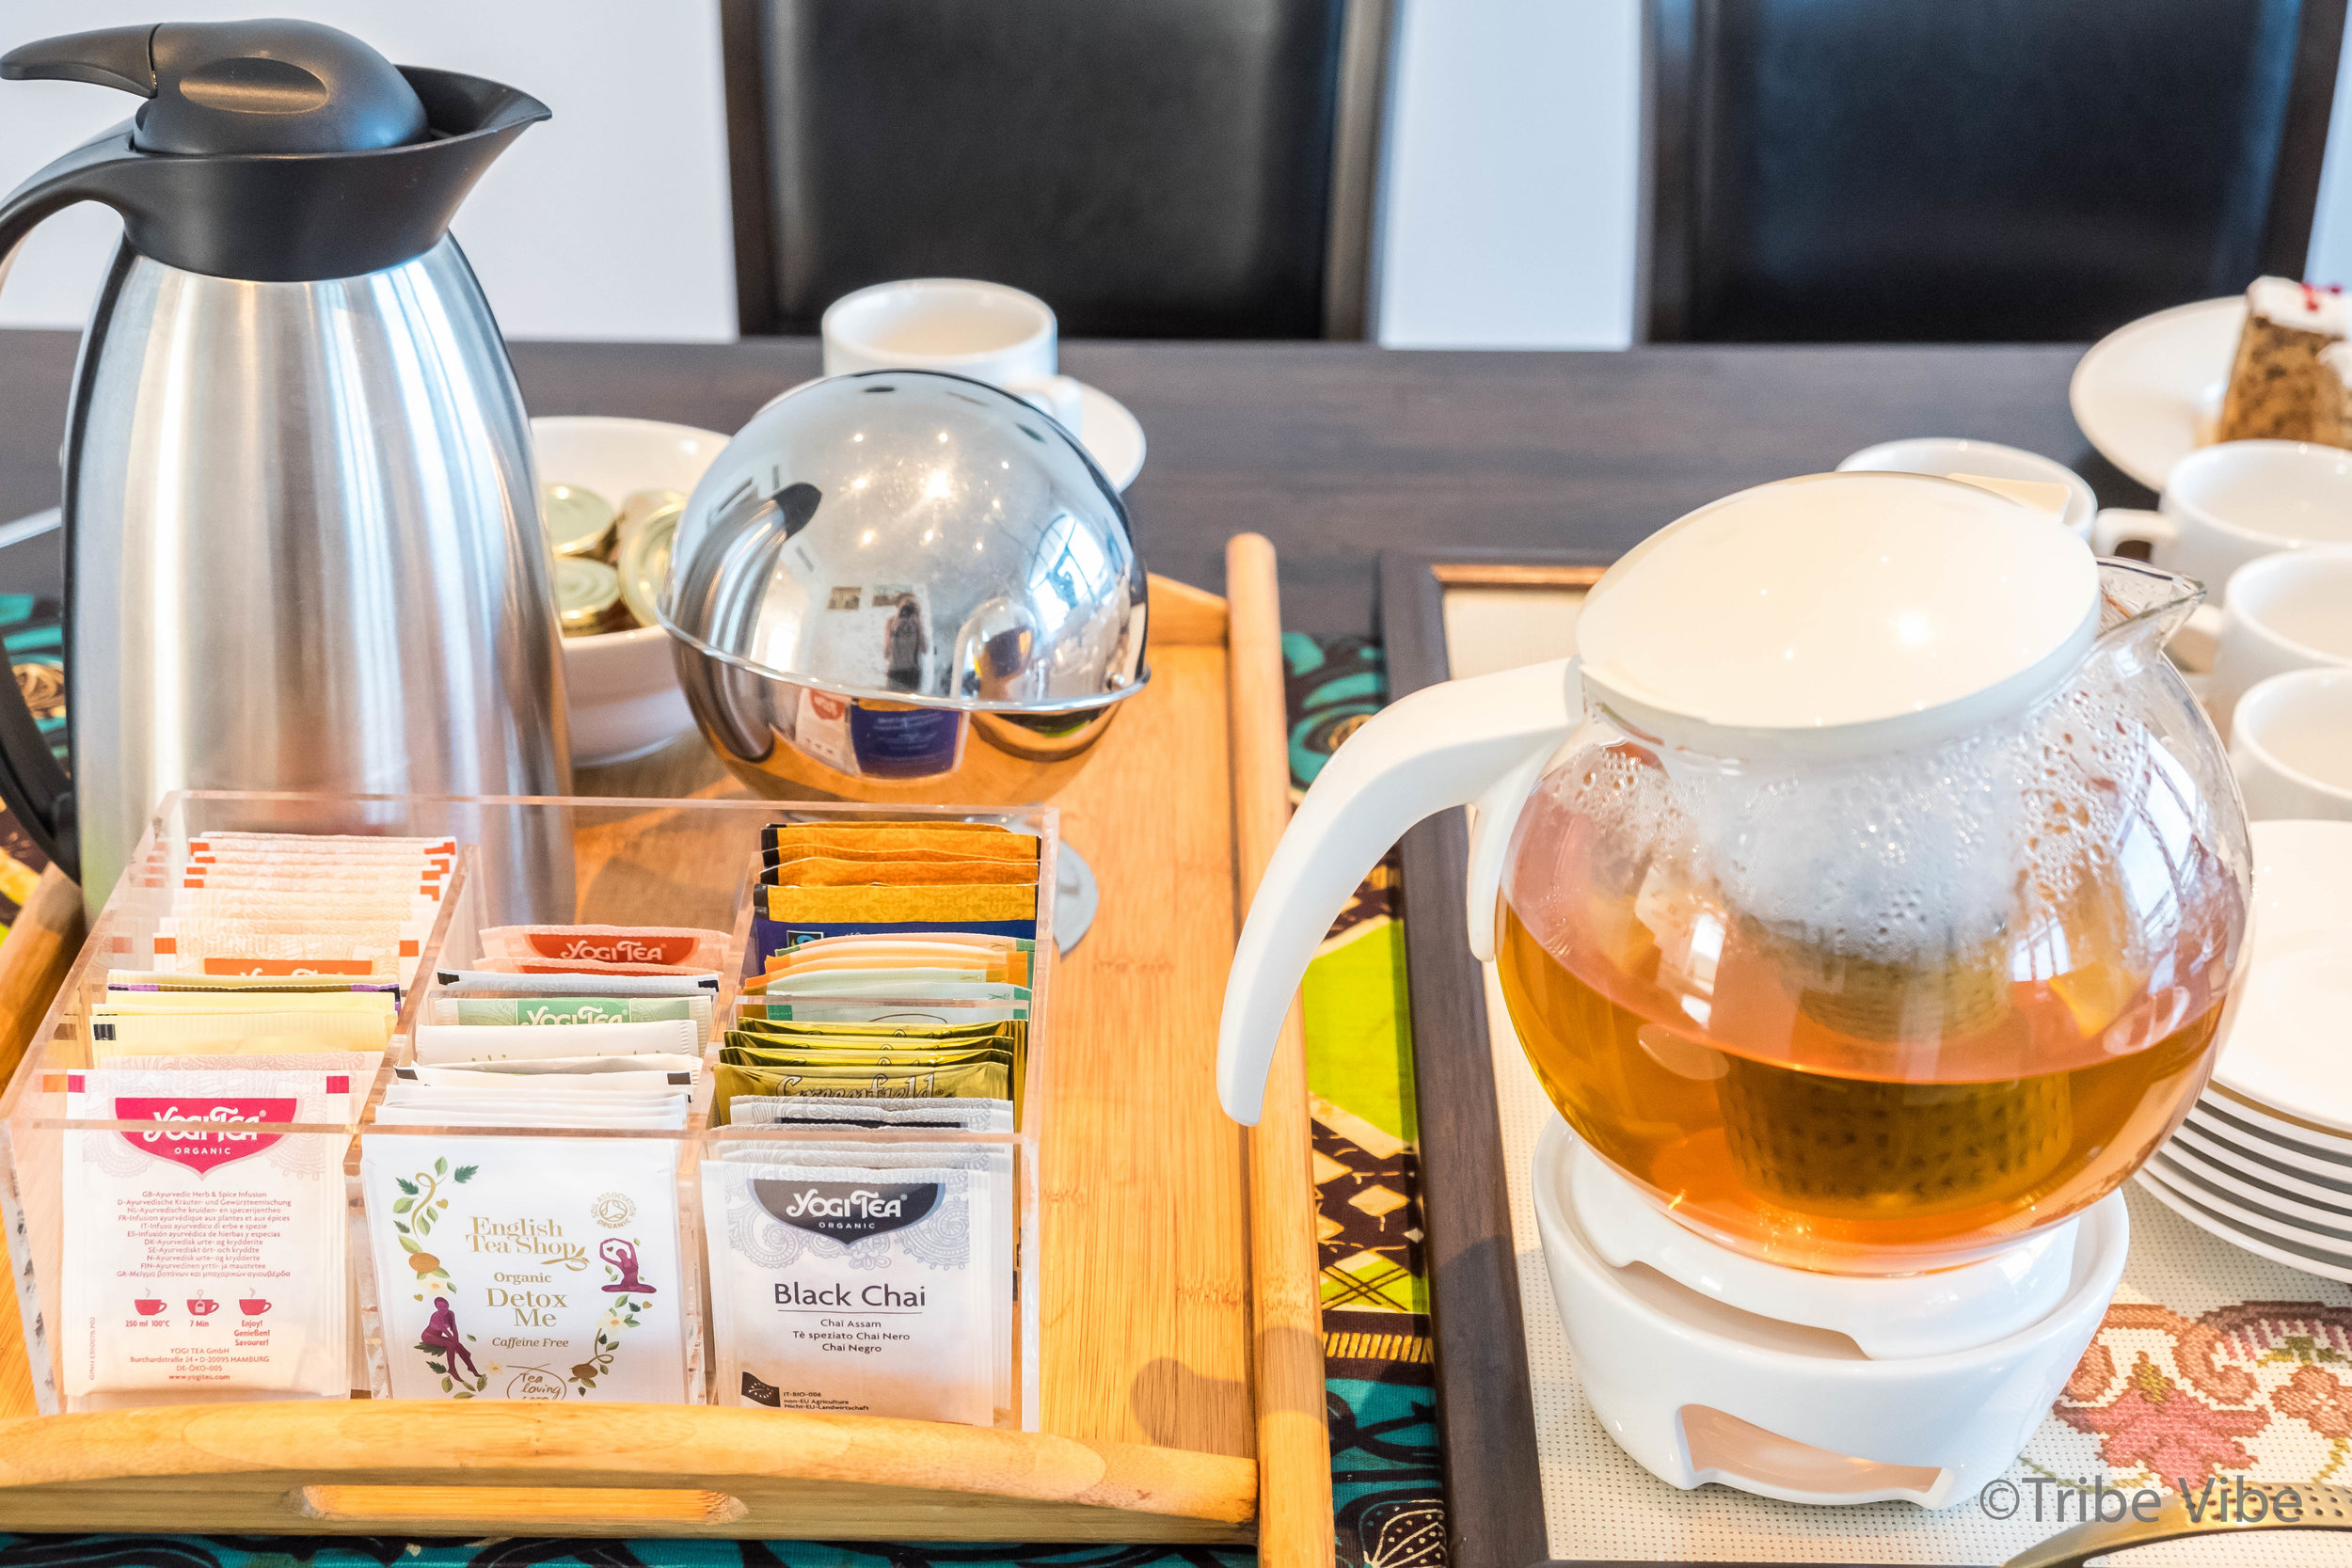 A beautiful pot of ginger tea was waiting for us